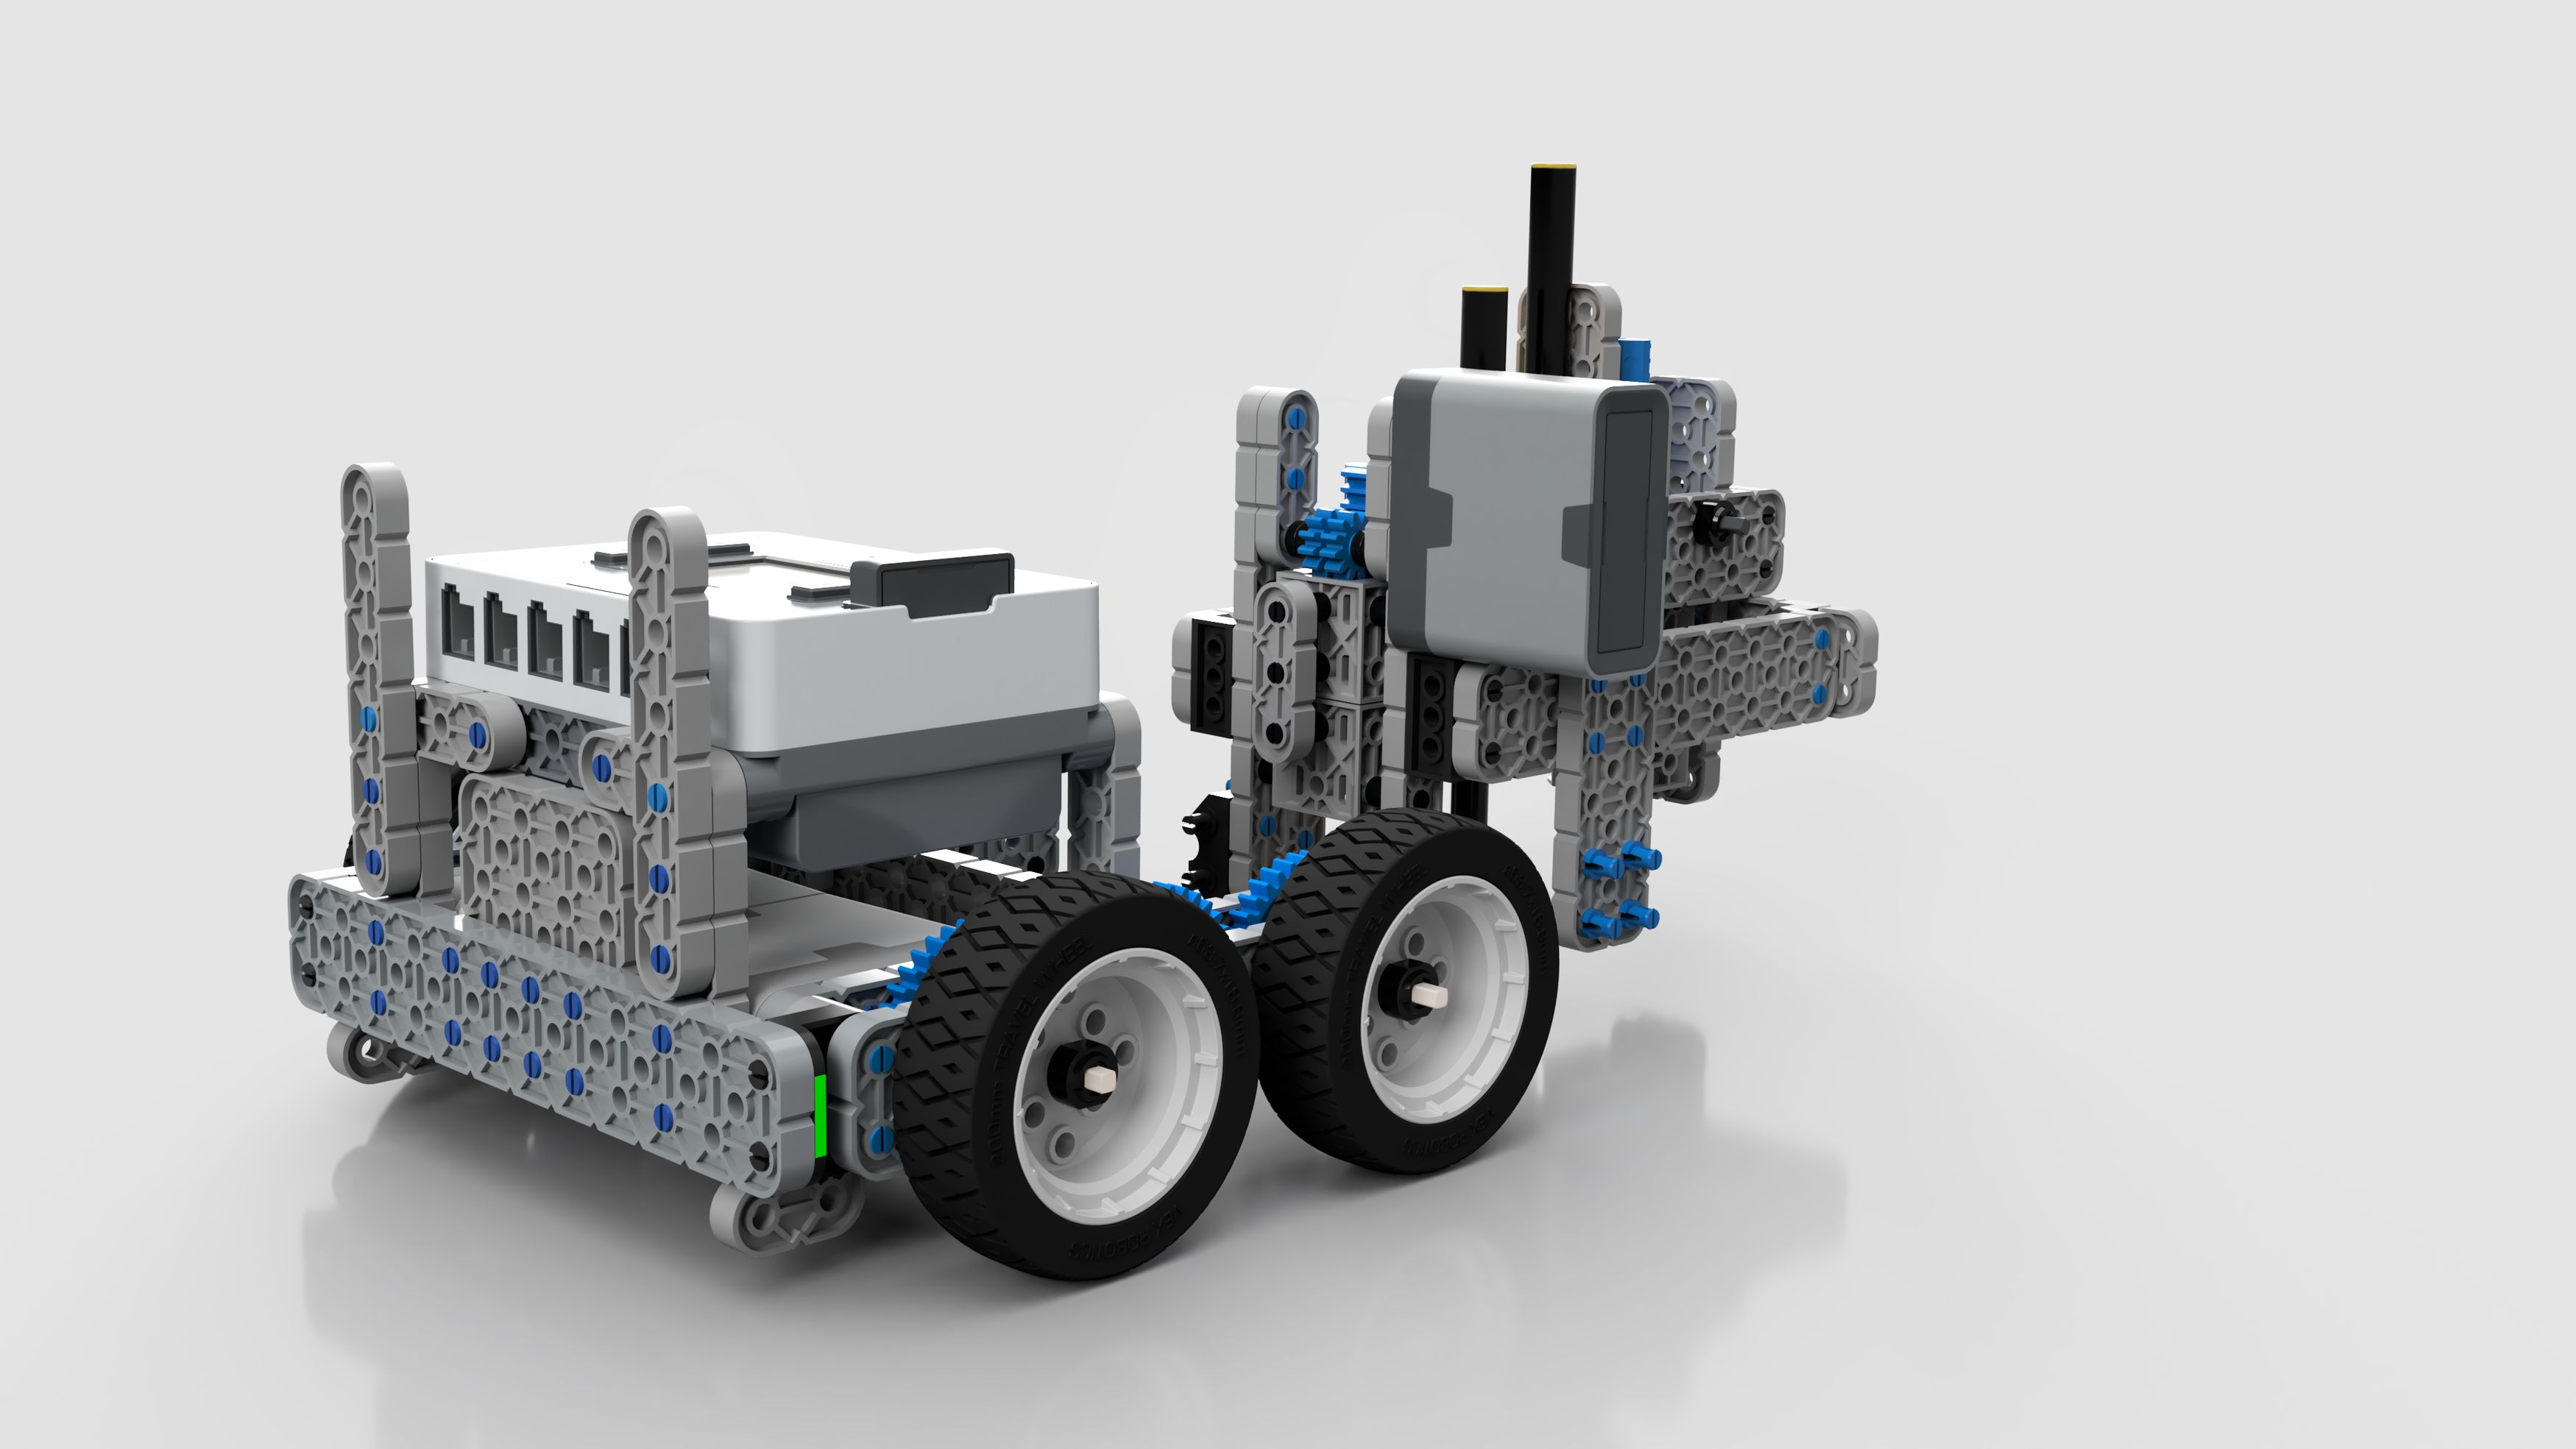 Vex-iq-robot-caneta-2020-may-24-04-59-00pm-000-customizedview19893992762-png-3500-3500